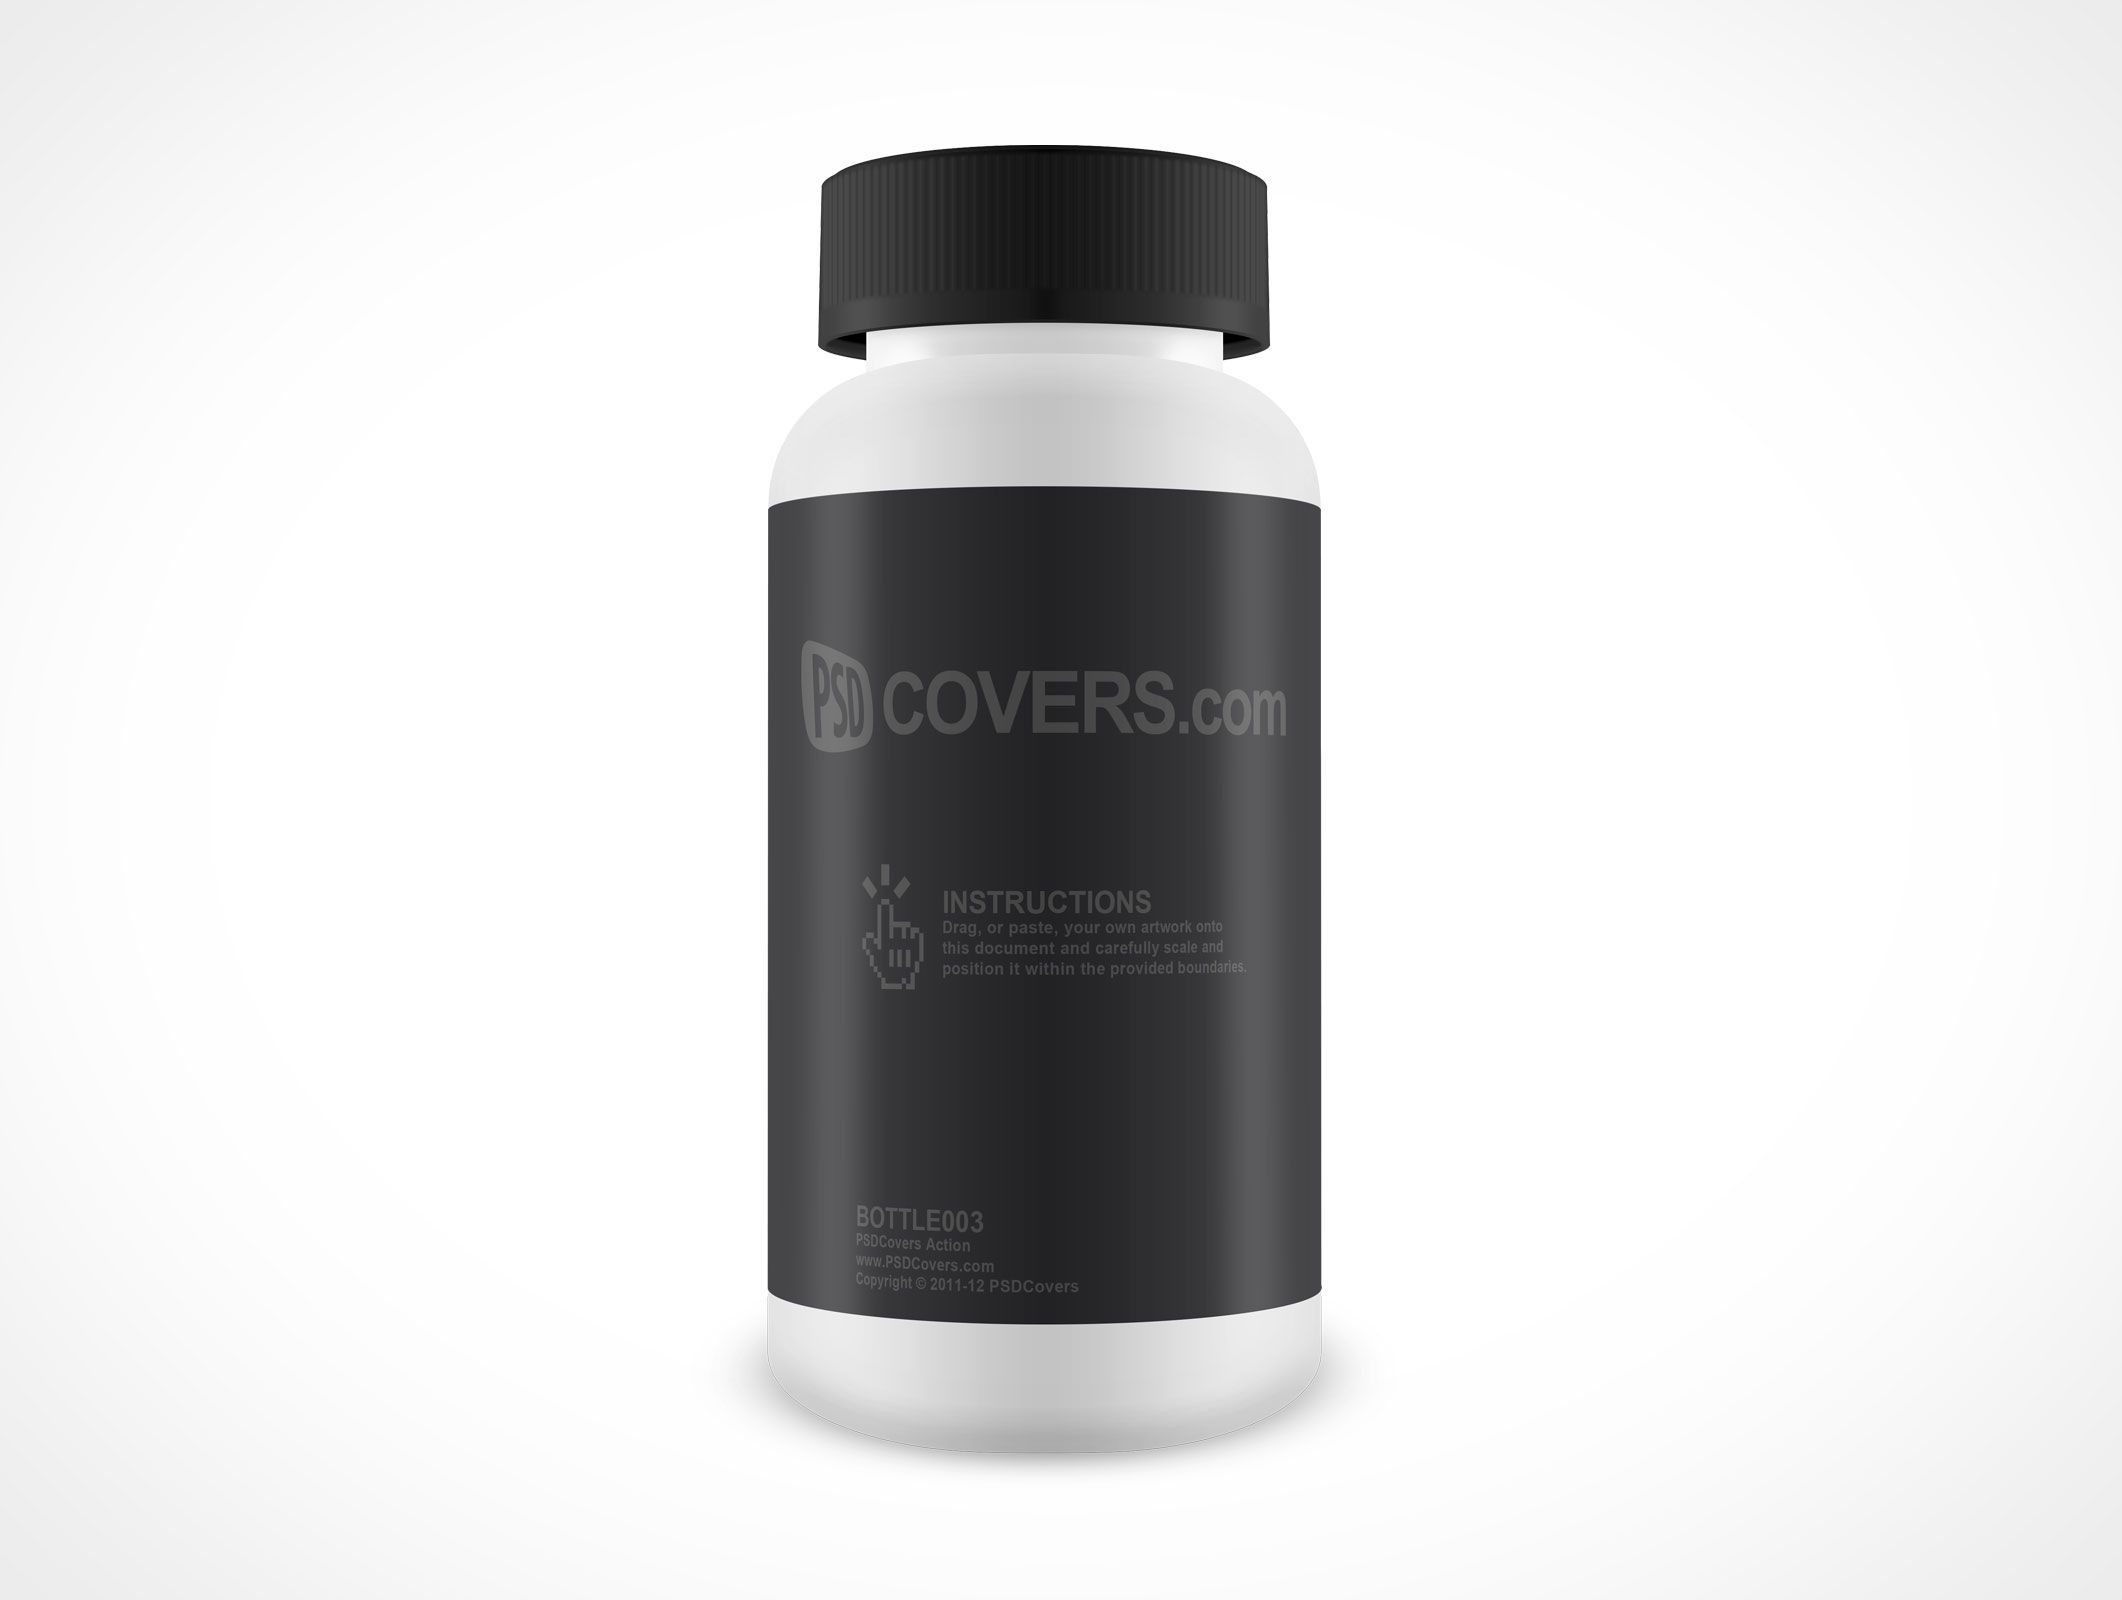 BOTTLE003 is a front facing shot of a large anti-headache medicine ...